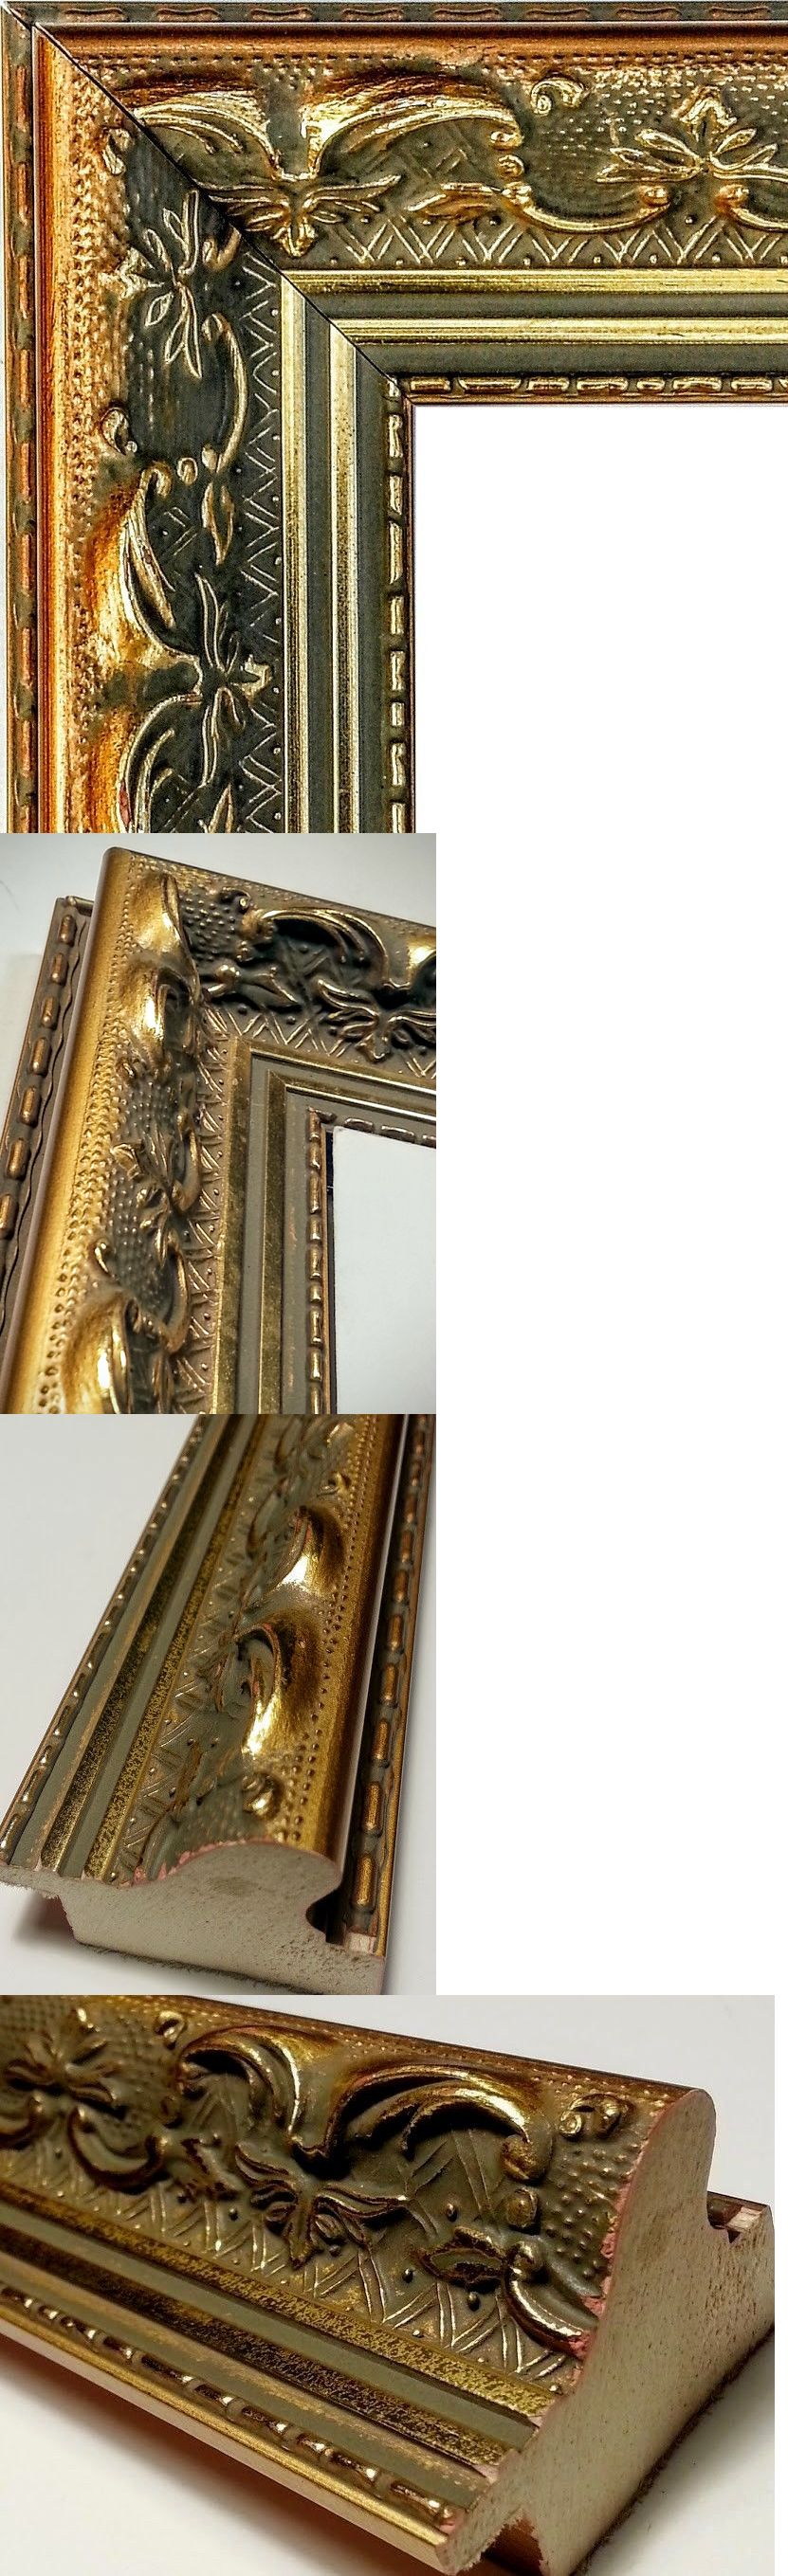 Frames And Supplies 37575 20 Feet Wide Ornate Gold Picture Frame Moulding Baroque Antique Gold Woo Gold Picture Frames Picture Frame Molding Antique Gold